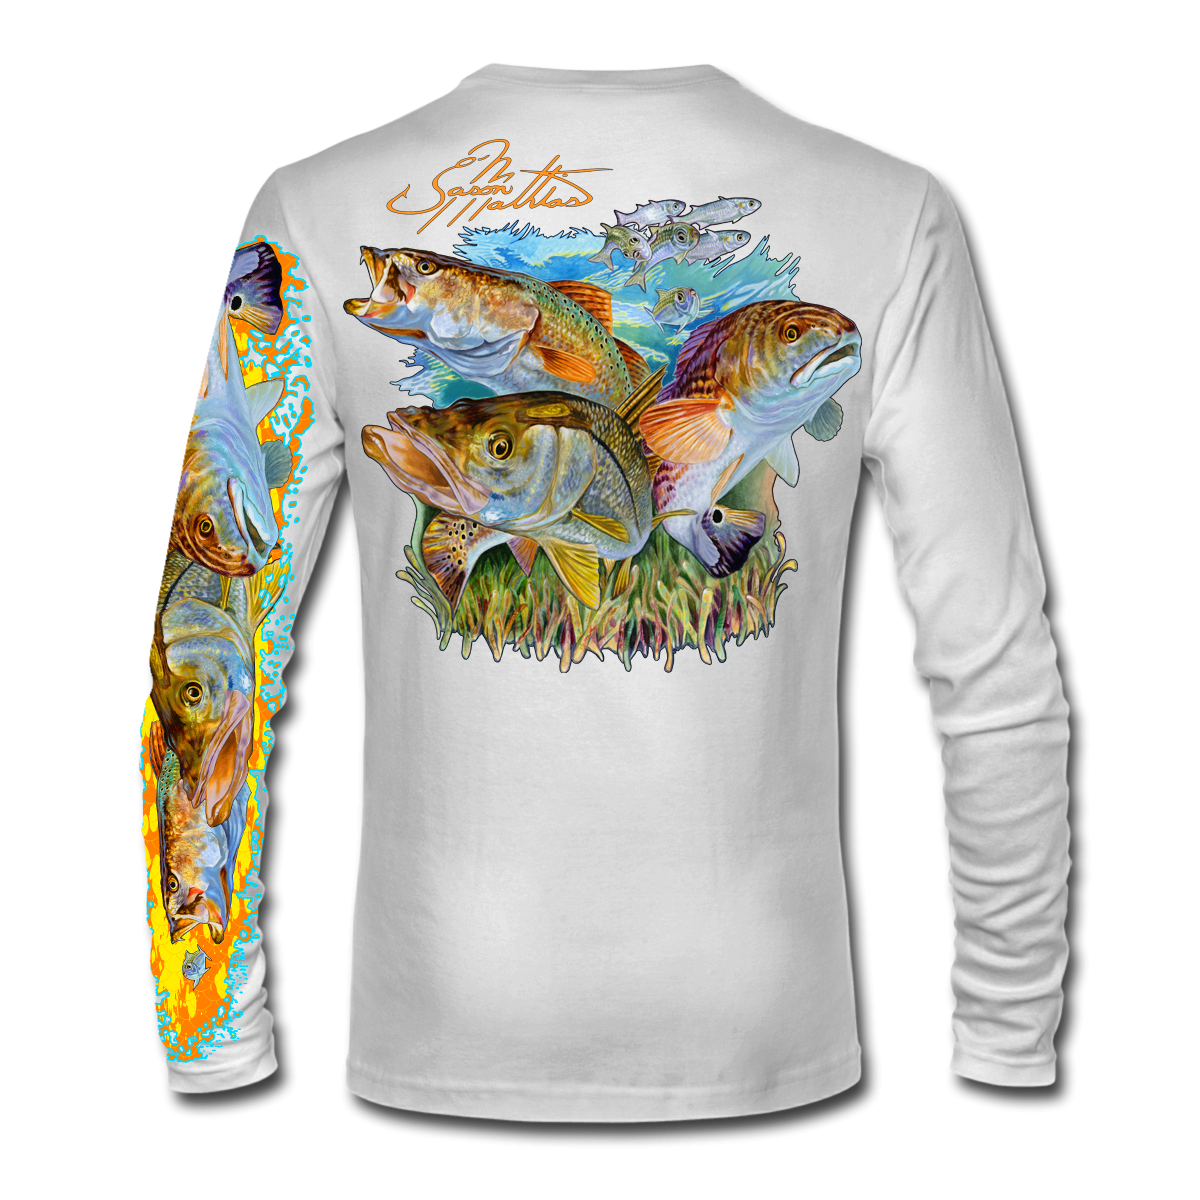 inshore-slam-shirt-white-jason-mathias-snook-trout-redfish.png